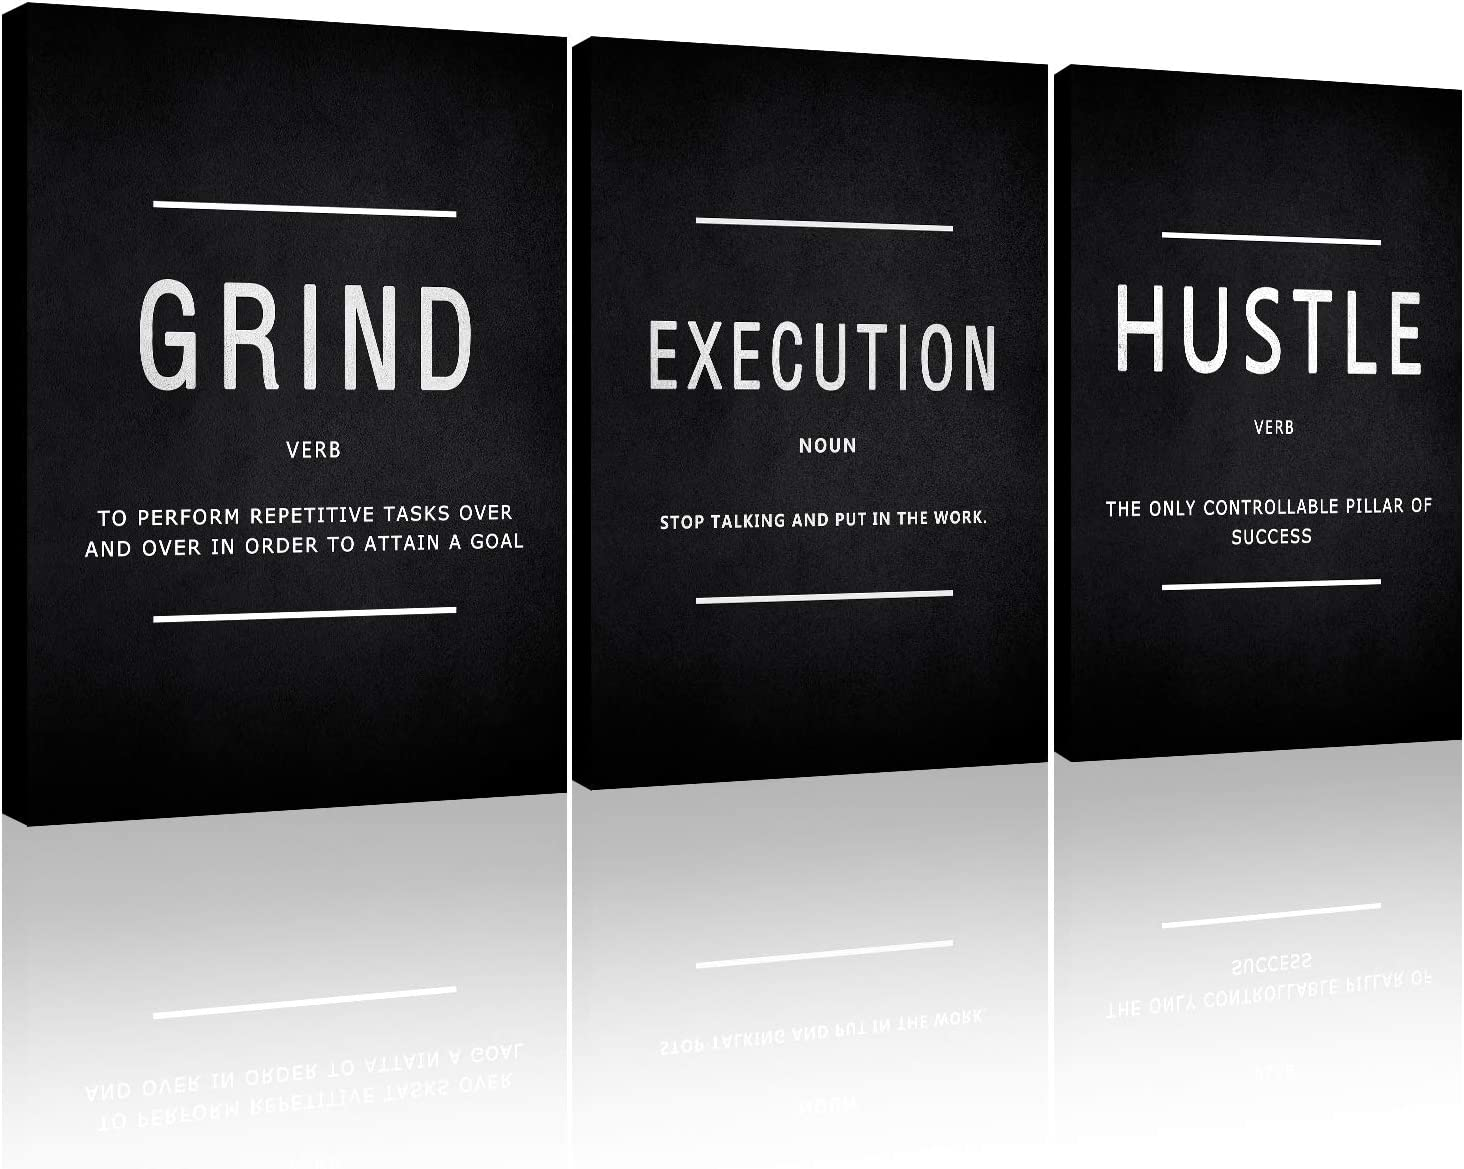 Motivational Canvas Wall Art, Grind Hustle Execution Office Wall Decor Framed Inspirational Prints Quotes for Office Wall Art Gallery-Wrapped Canvas Art 3 Piece